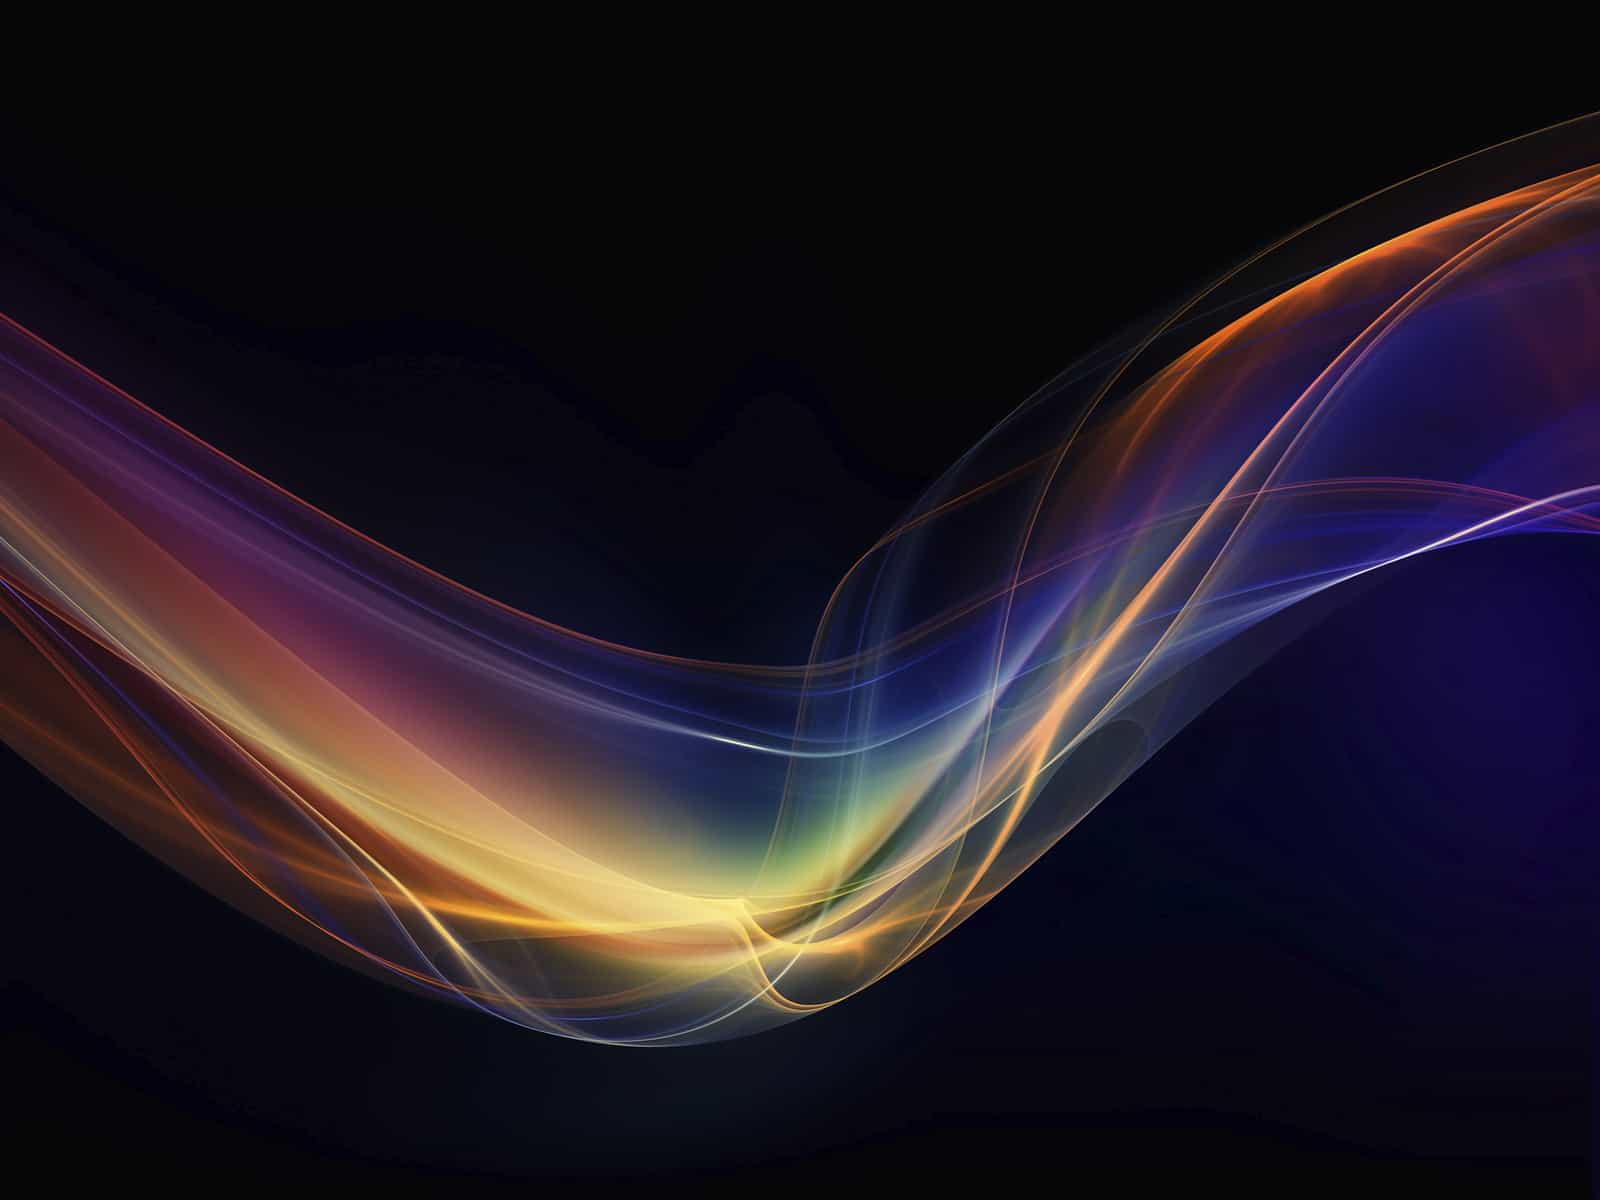 Abstract Light Waves Coloured